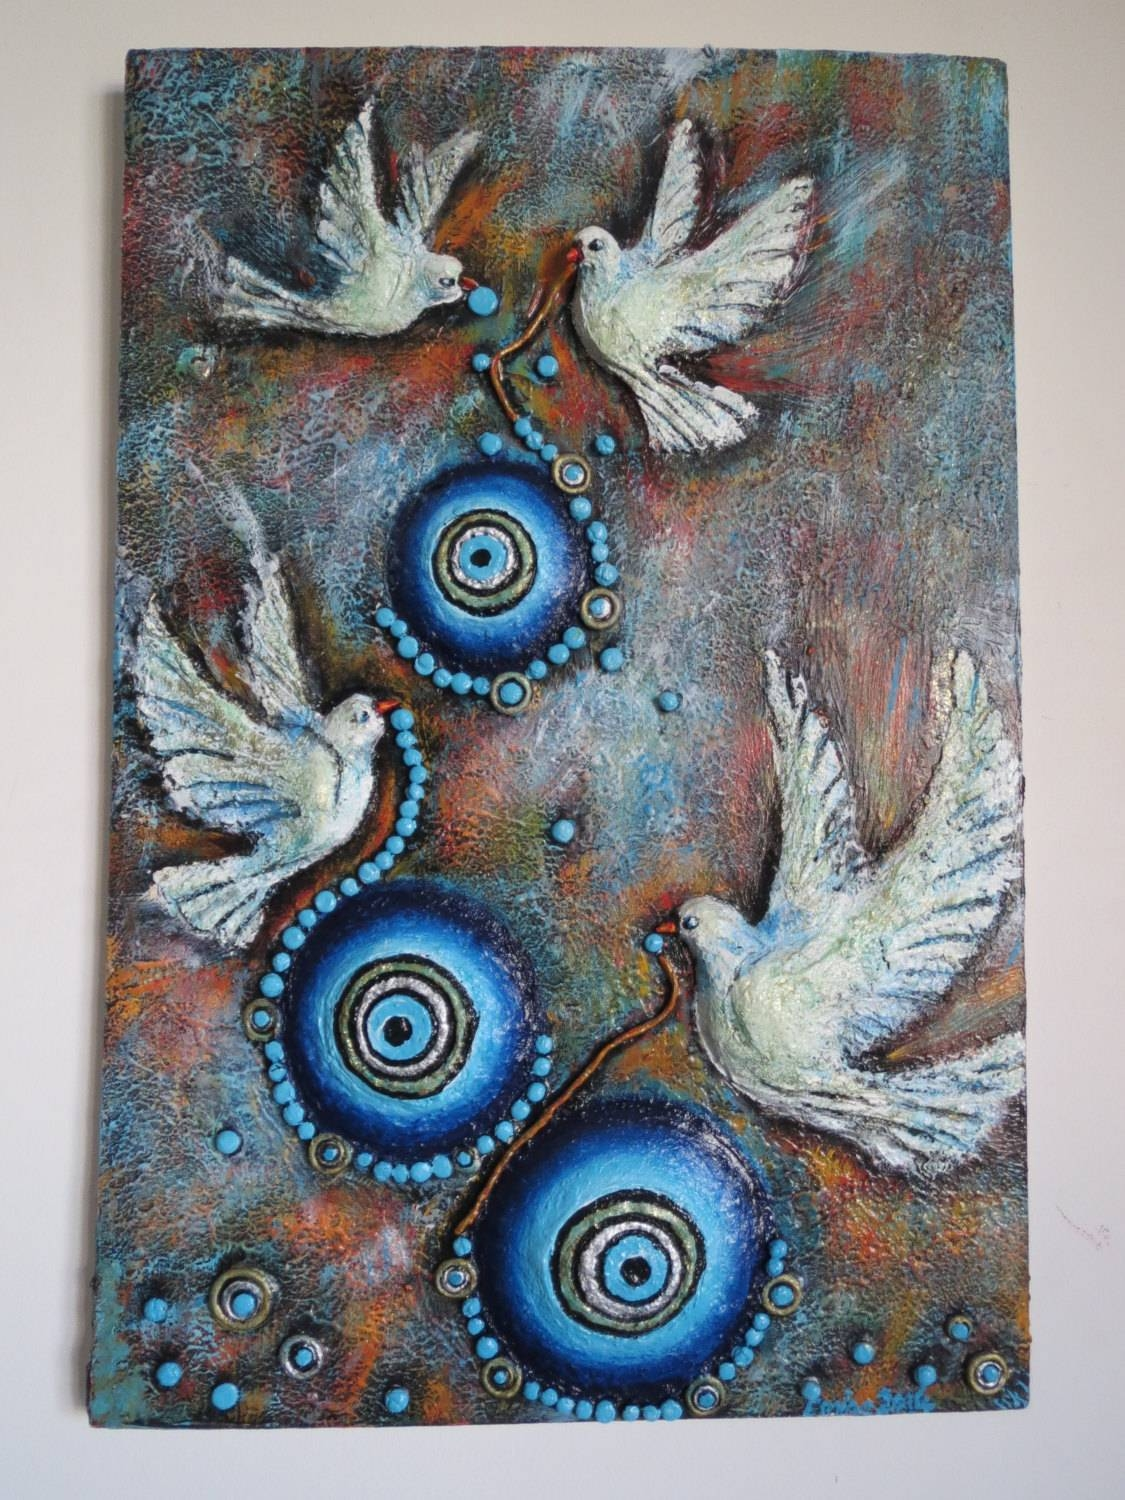 Birds With Beads – 3D Handmade Handpainted Wall Art, Relief Regarding Recent Ceramic Bird Wall Art (View 14 of 30)